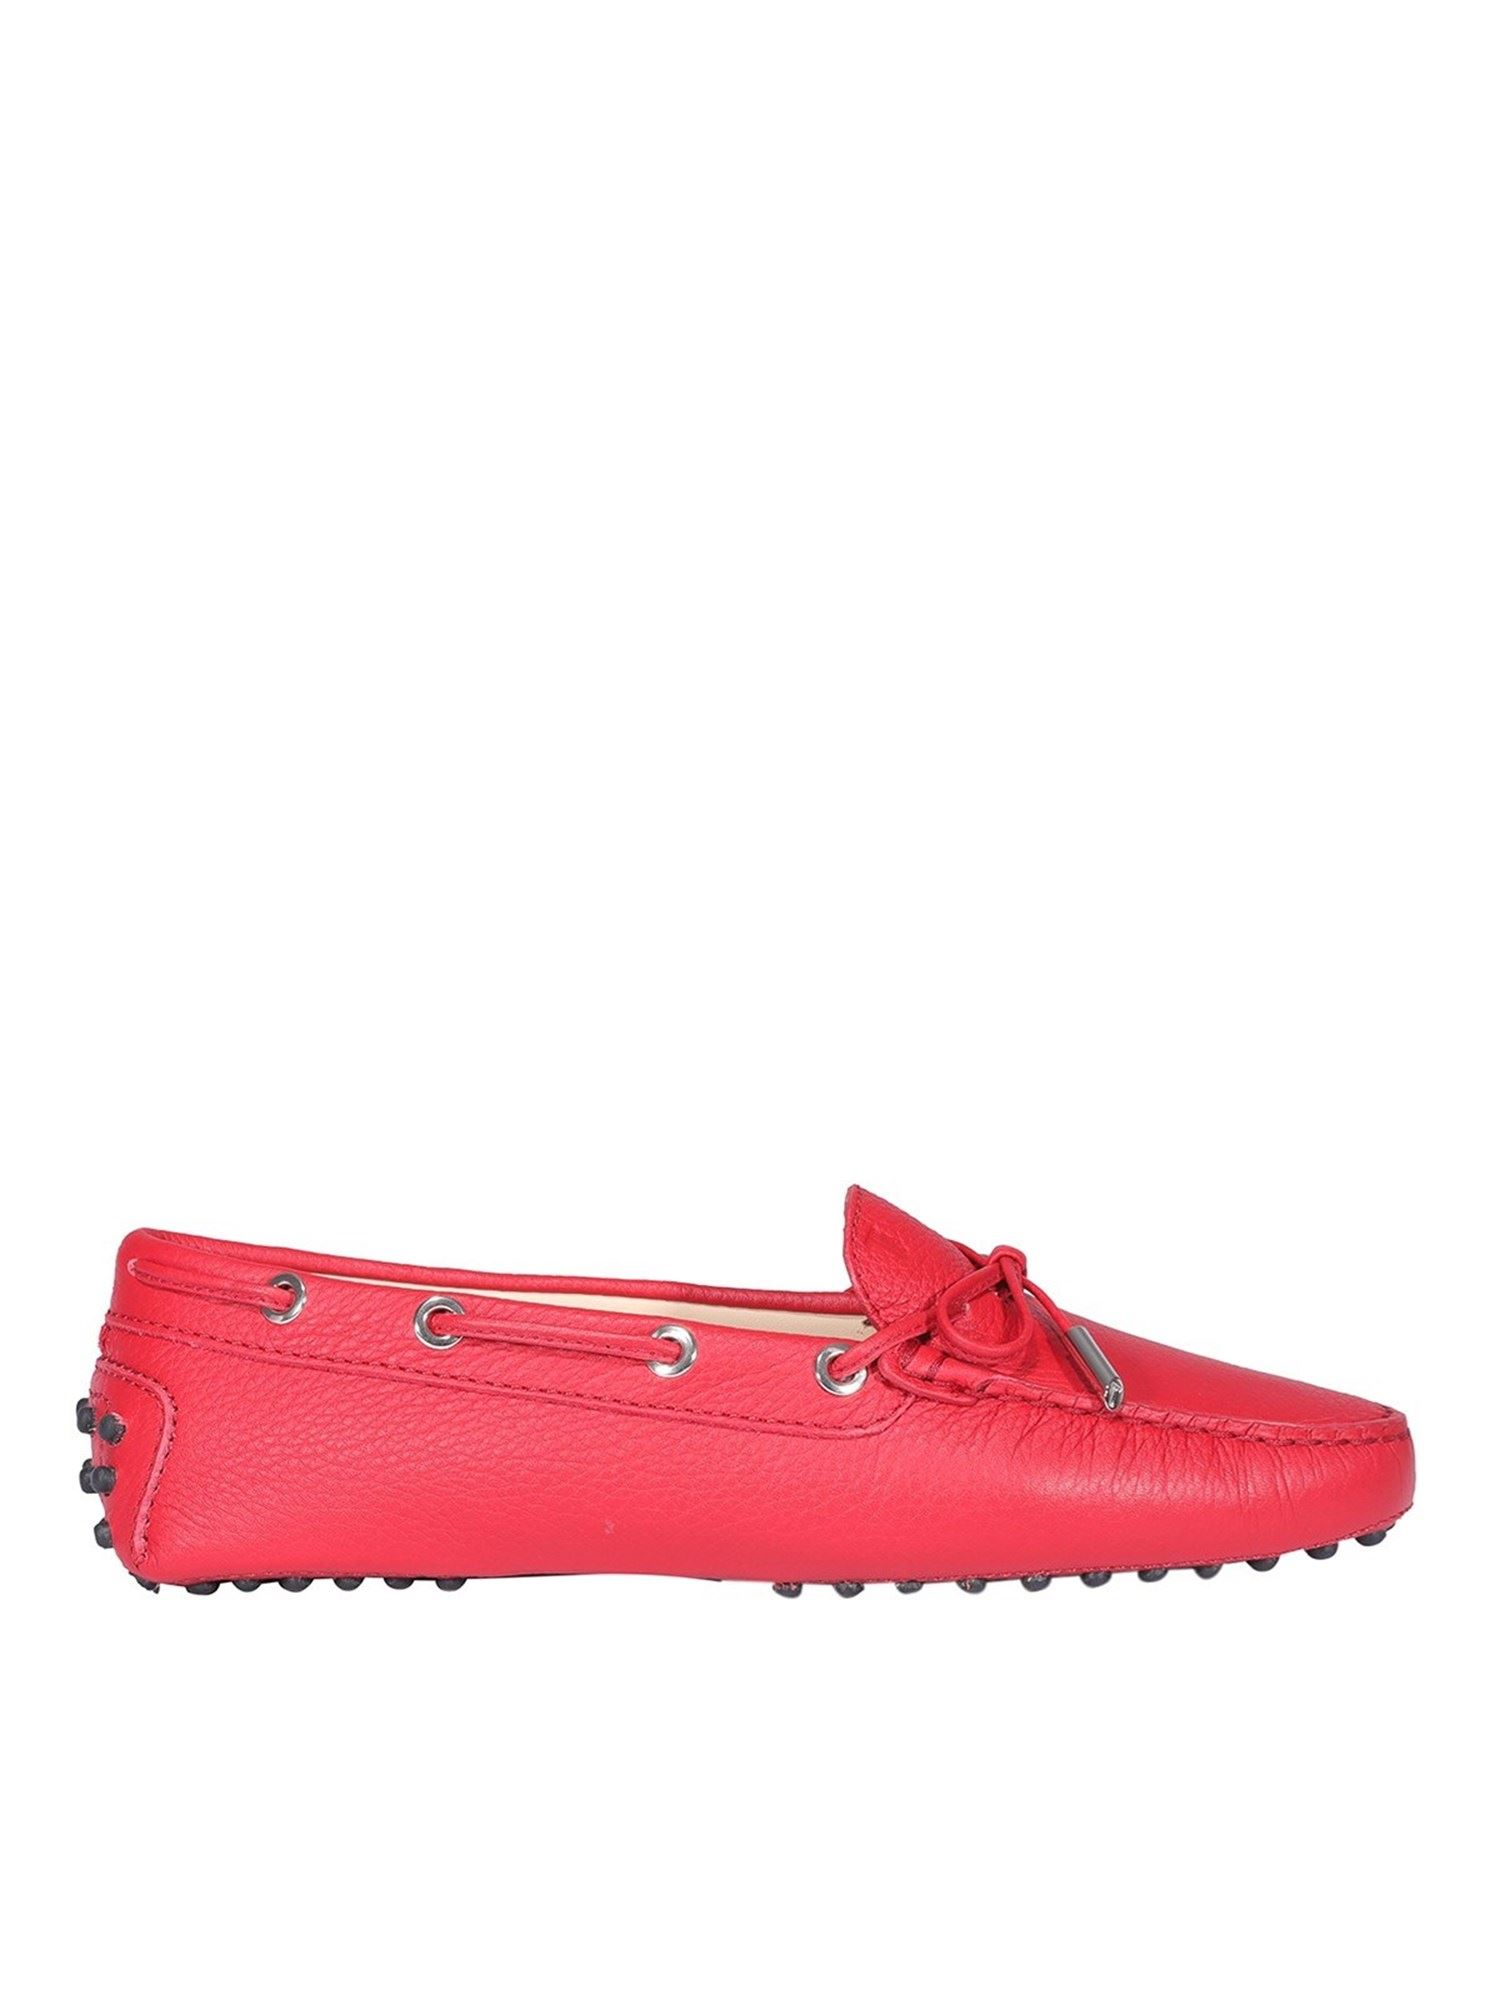 Tod's PEBBLED LEATHER DRIVING SHOES IN RED